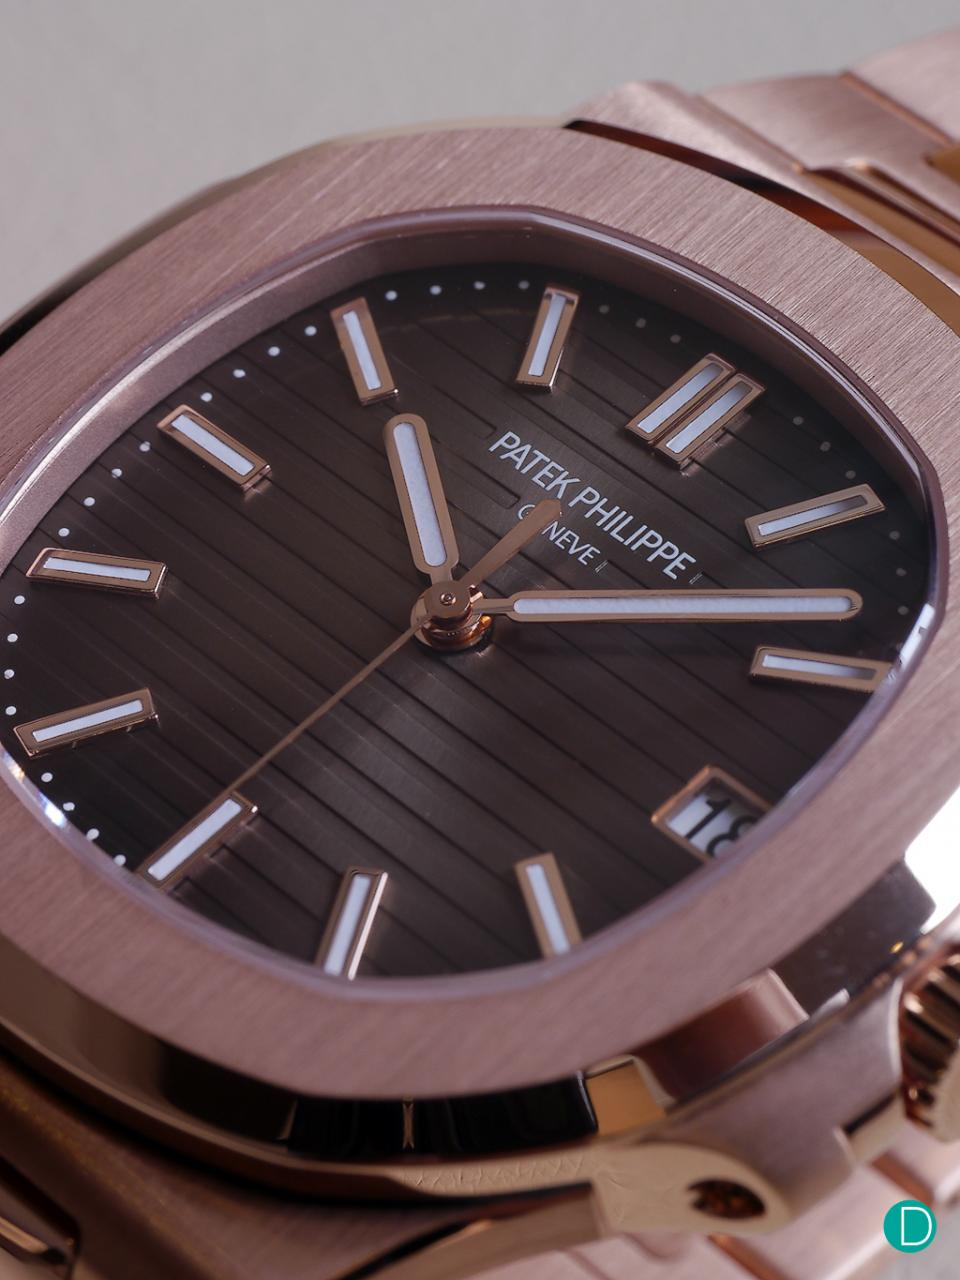 Patek Philippe Nautilus 5711 watch replica